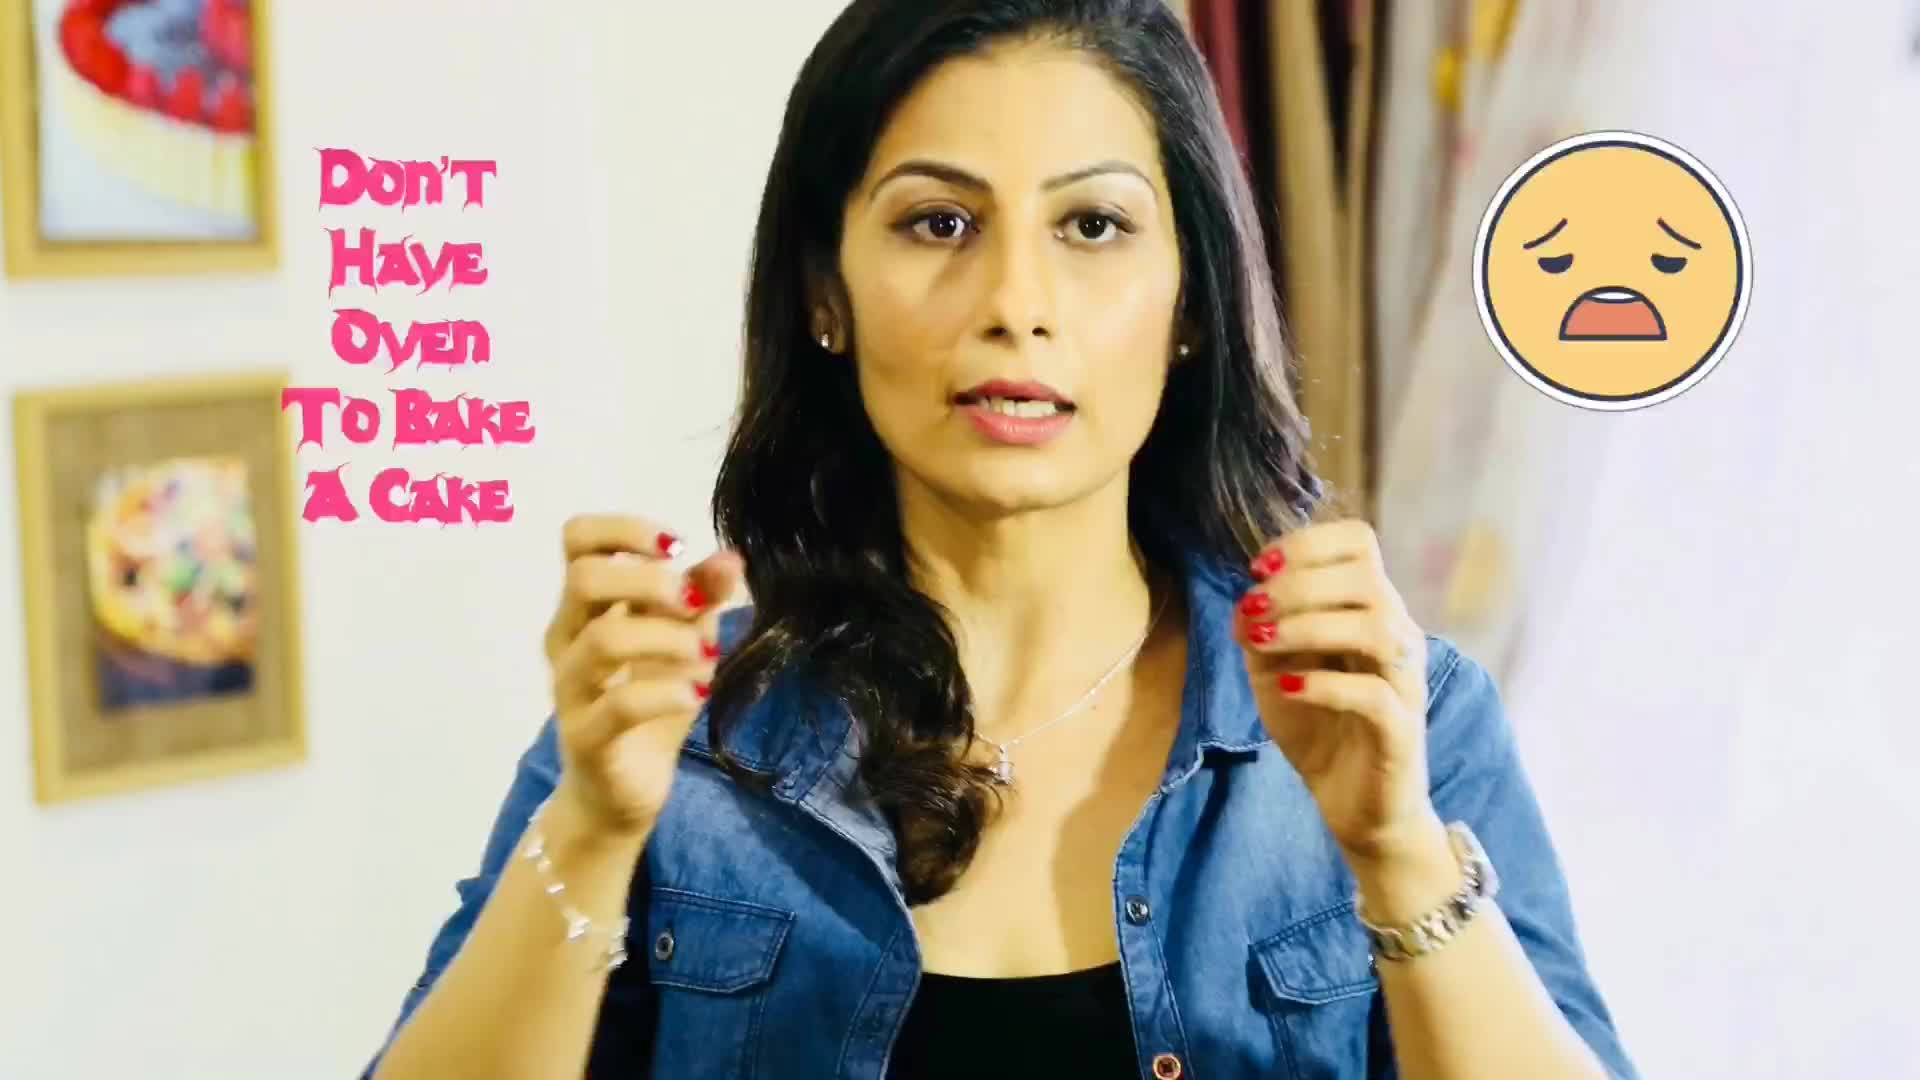 Don't have an oven? Even microwave will do.. go bake your cake .. 2 Minutes Muggy Cake Watch on YouTube  💋💋💋 Love M. #ChefMeghna #ICanYouCan #cake #youtube #meghnasfoodmagic #nobake #cakes #mugcake